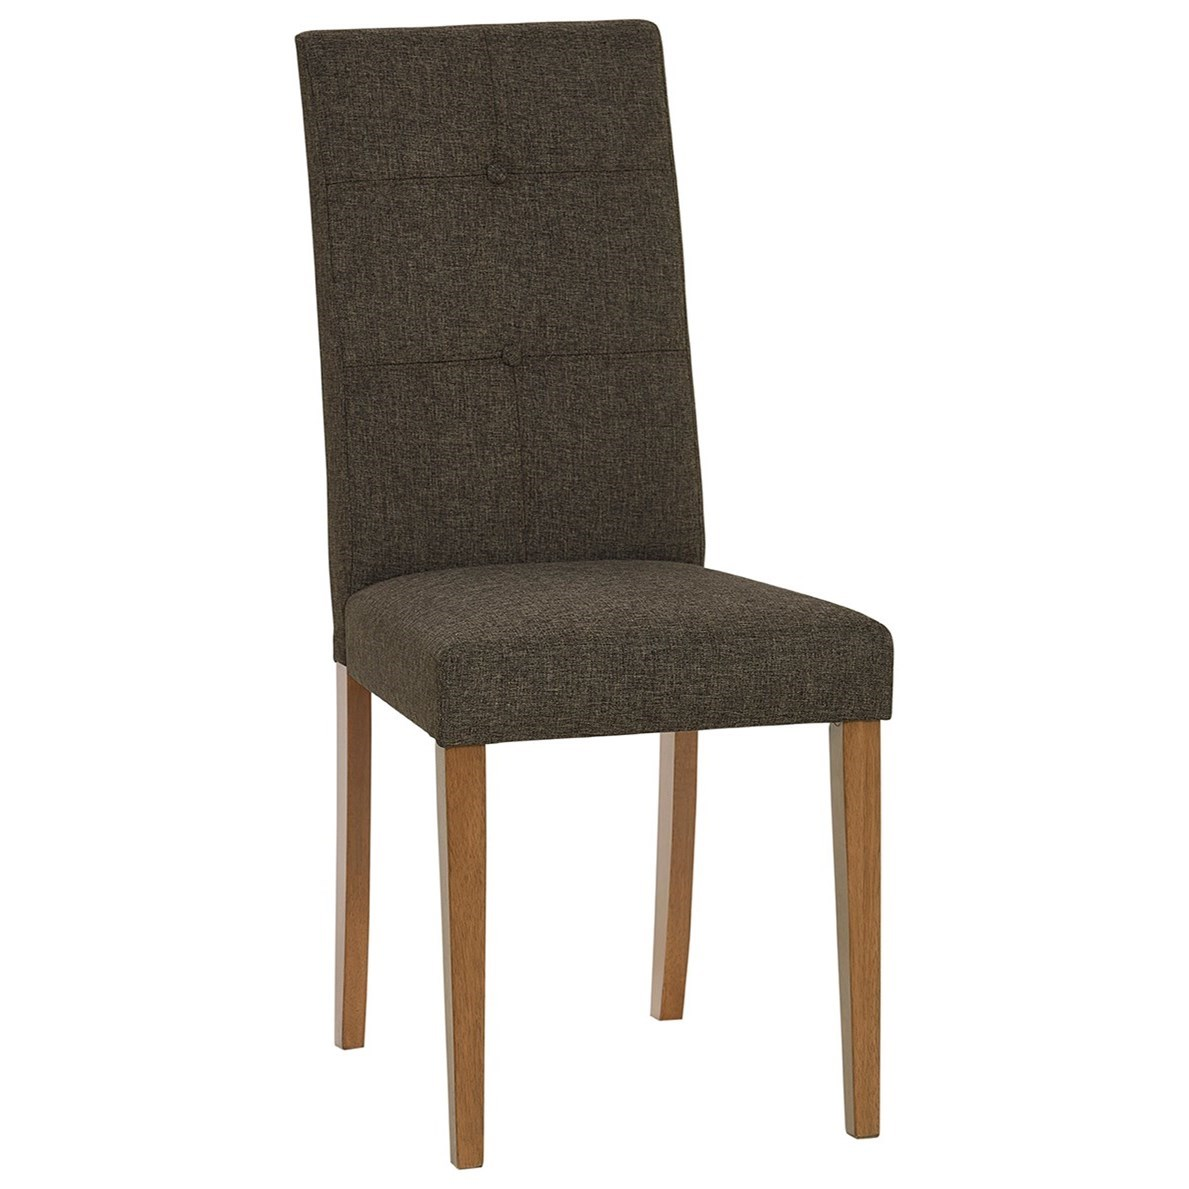 Arcade Side Chair by Progressive Furniture at Wayside Furniture